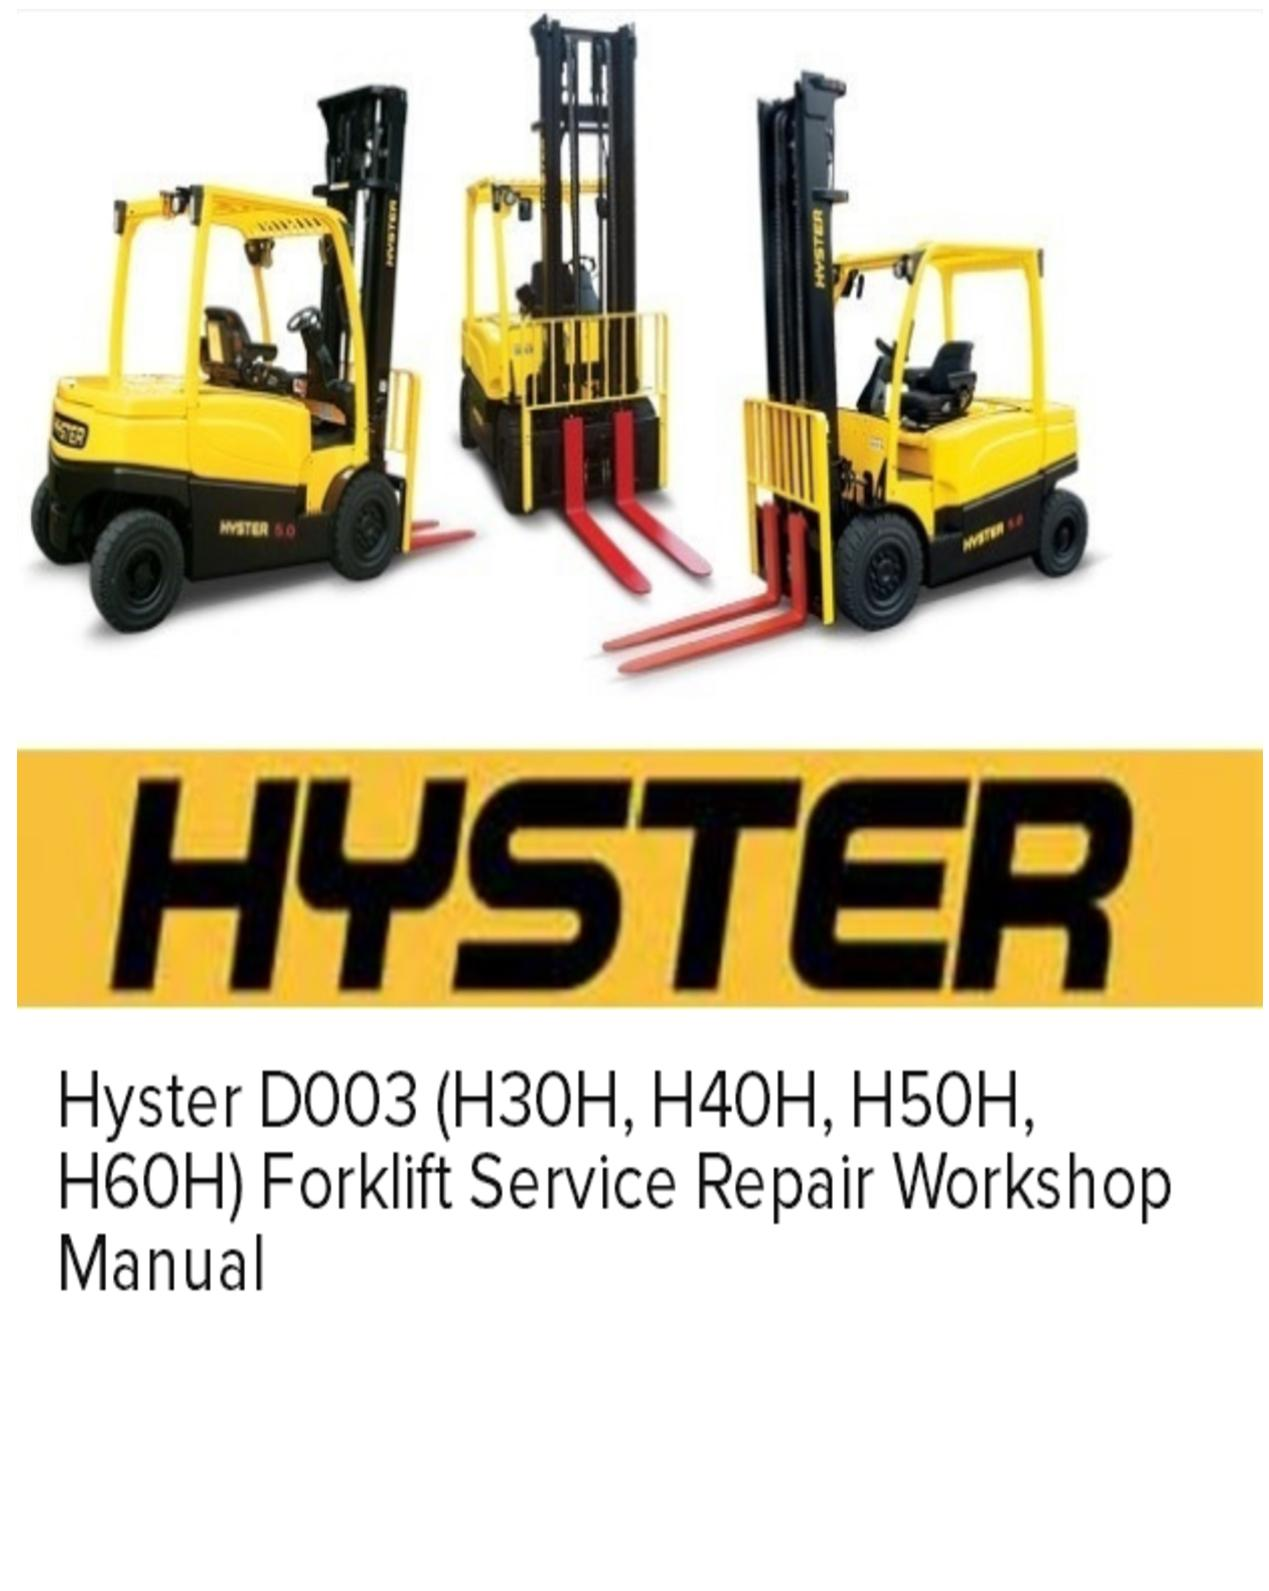 Calaméo - Hyster D003 (H30h, H40h, H50h, H60h) Forklift Service Repair  Workshop Manual